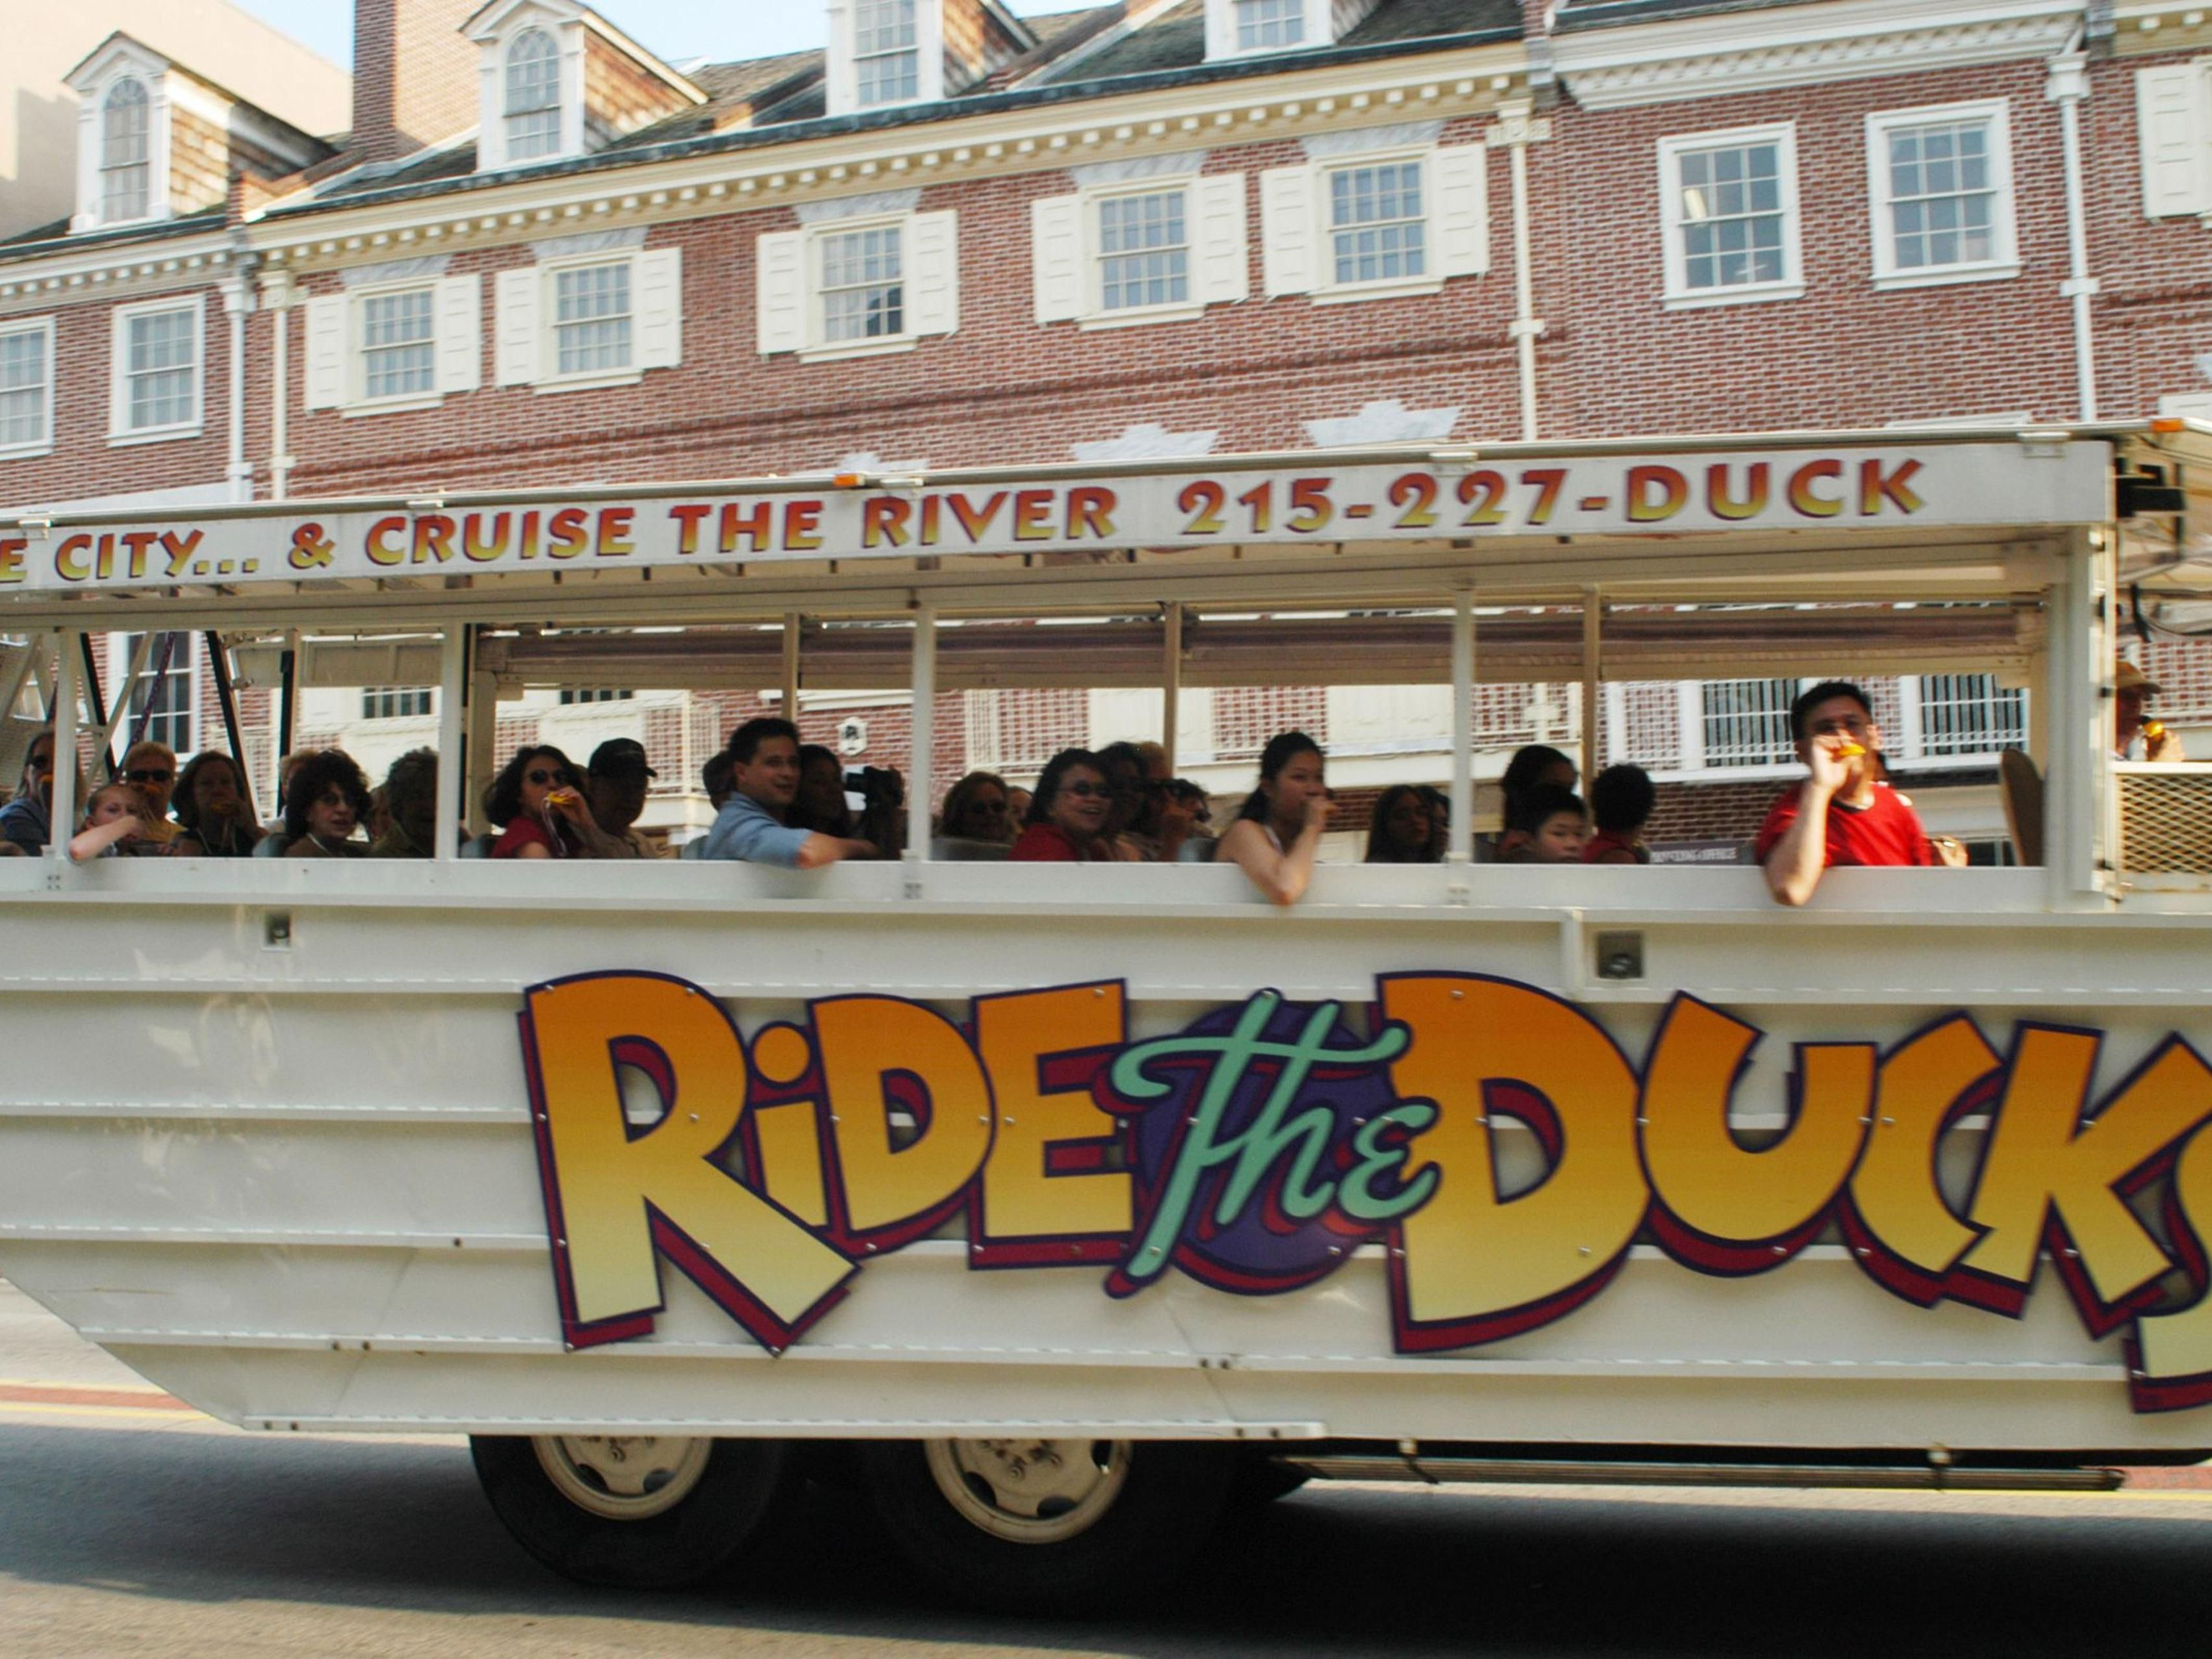 Ride the Ducks Tour, get your quaker ready!